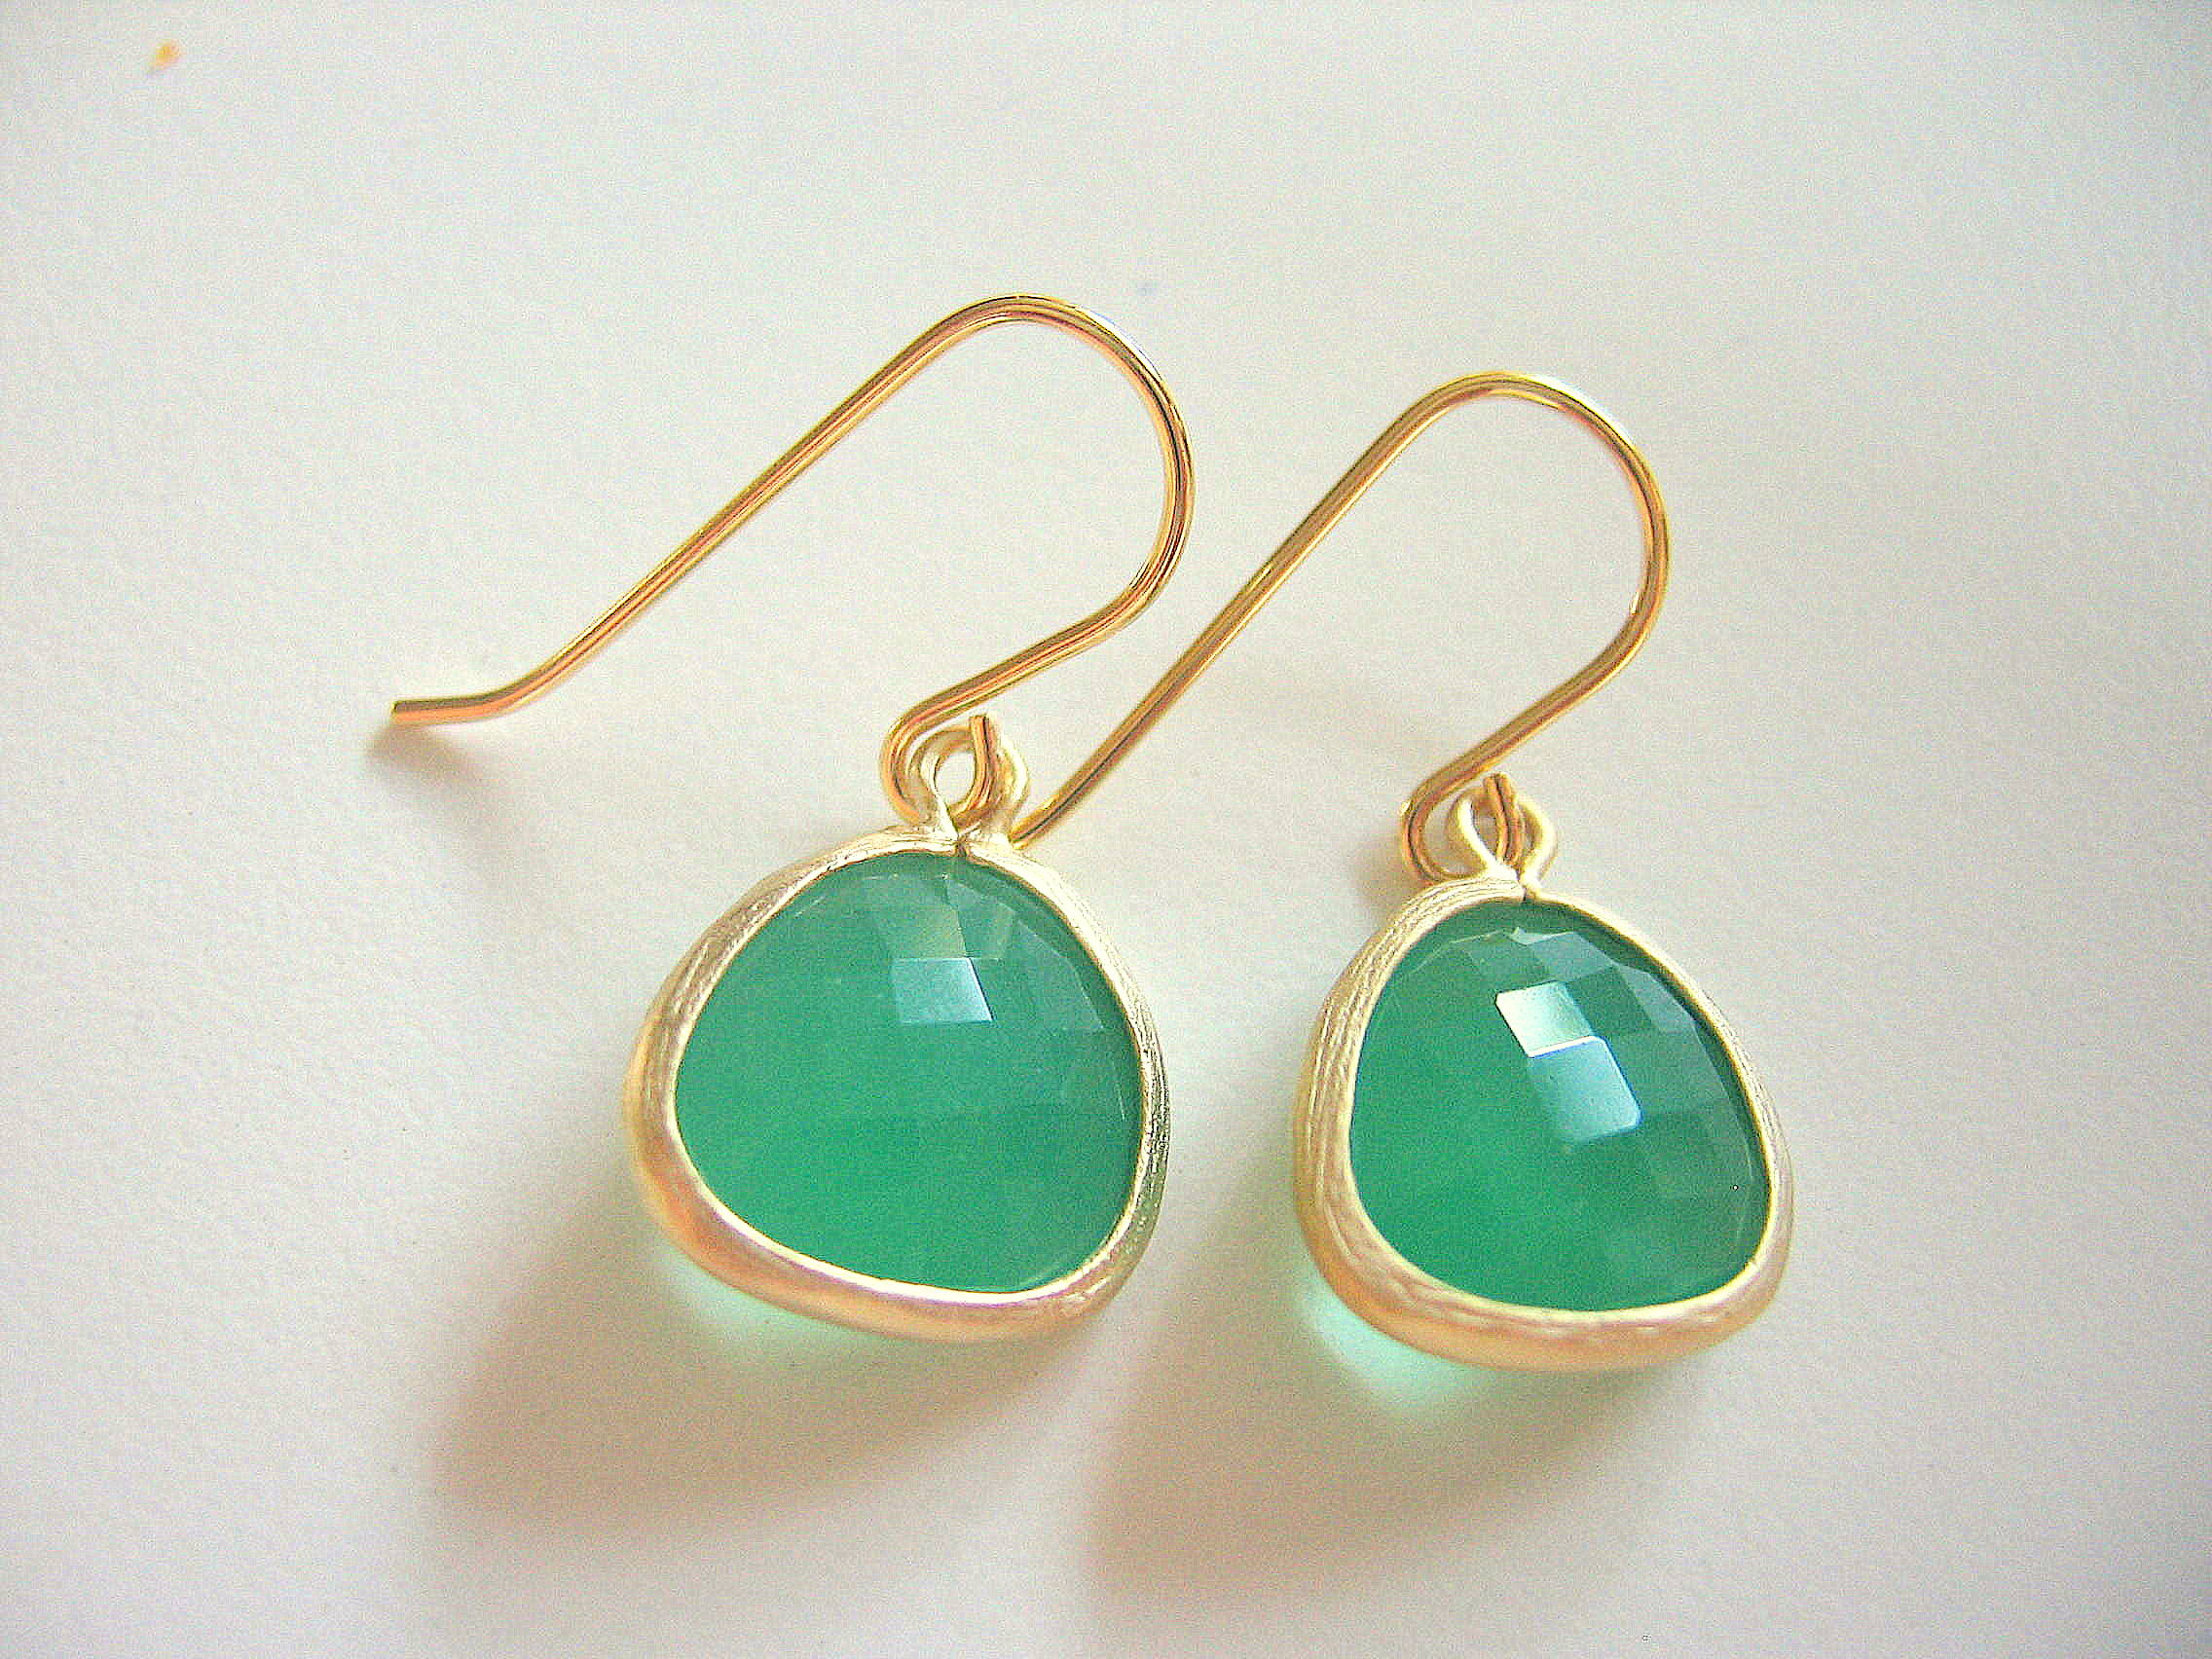 designs gold filled gf ripple edition limited soasa green grn earrings onyx product and dbl